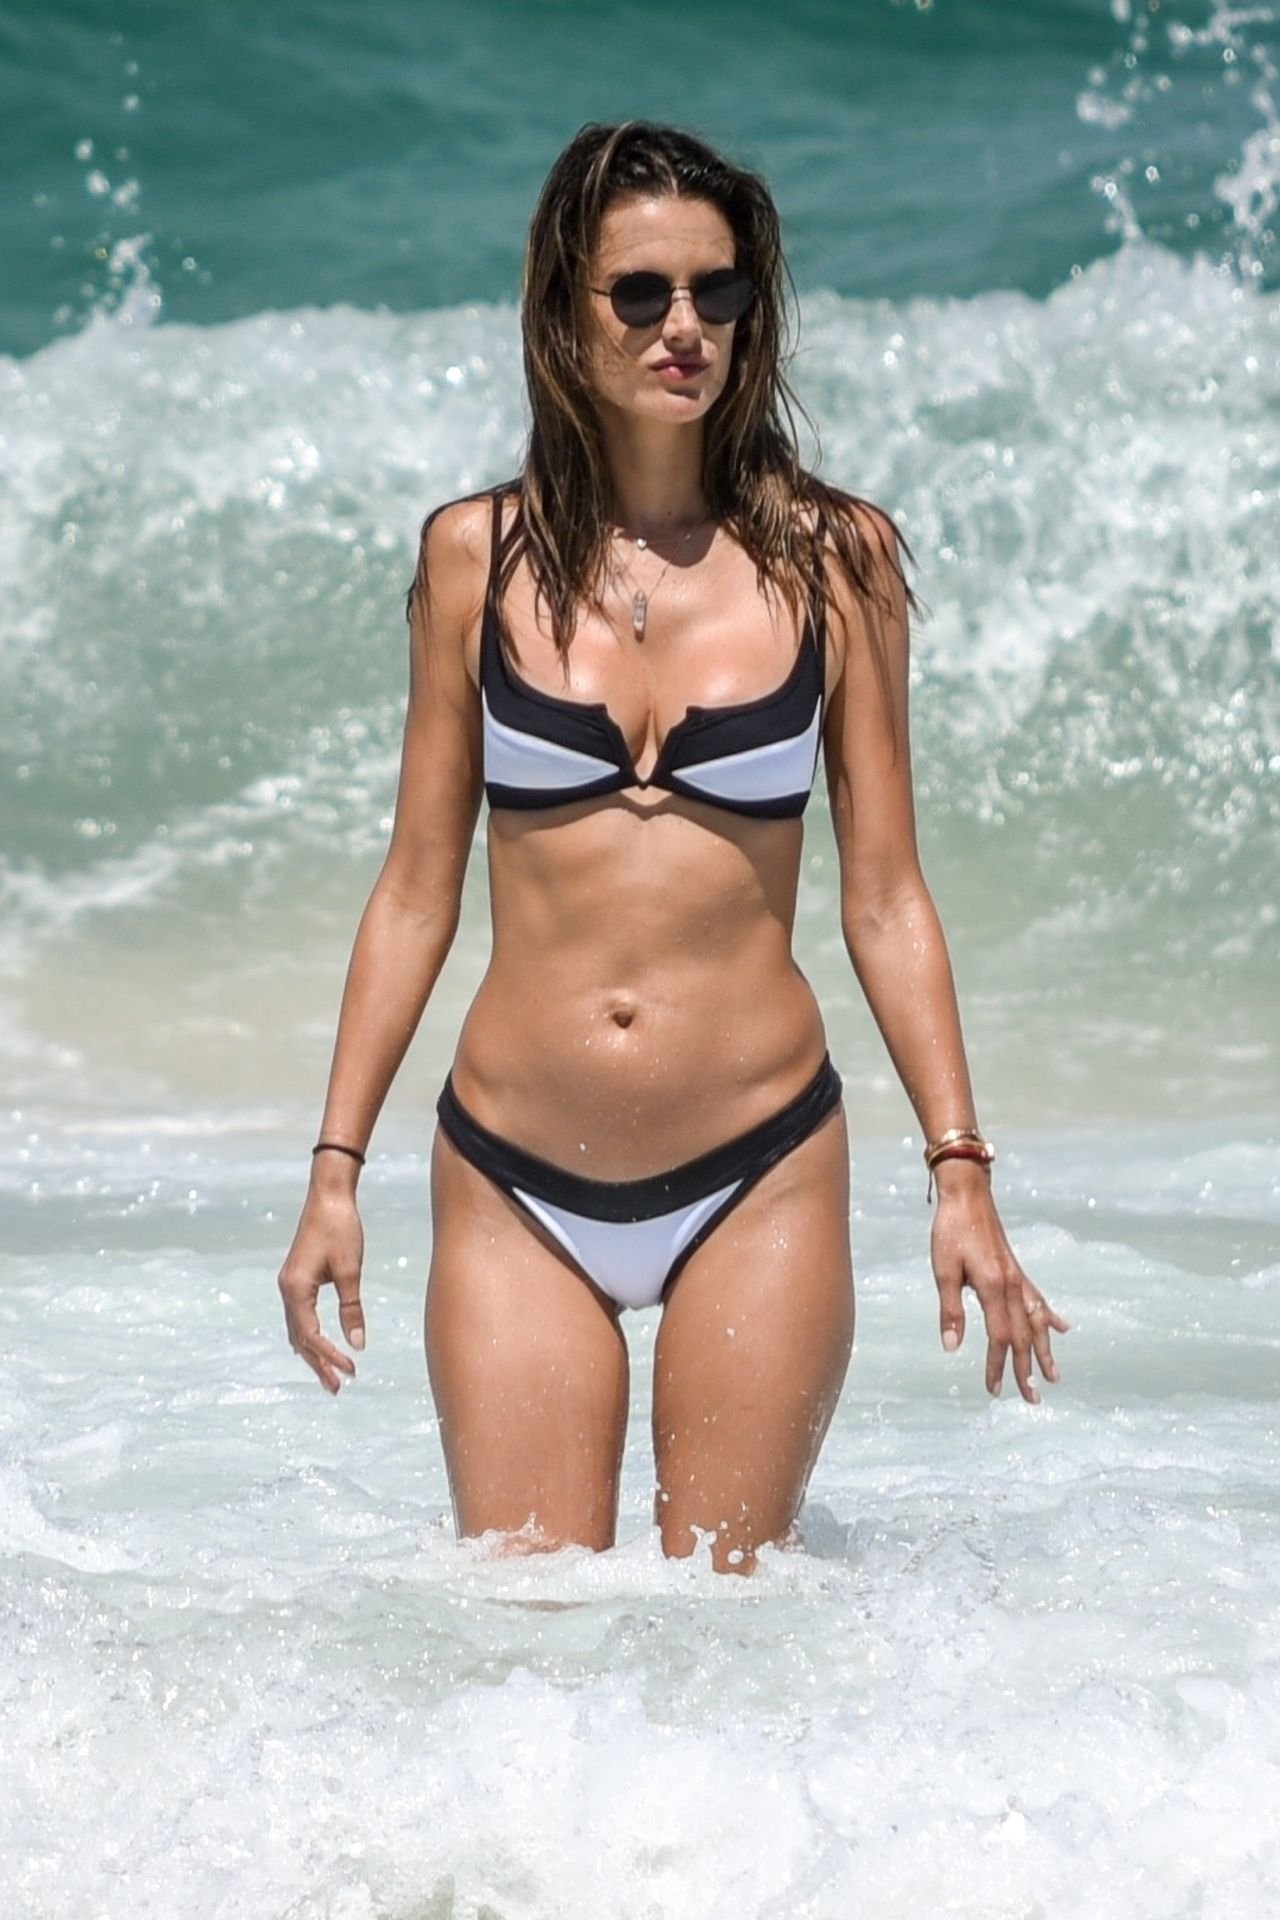 Alessandra Ambrosio in a Bikini - 27 Photos nudes (51 photos), Cleavage Celebrity pictures